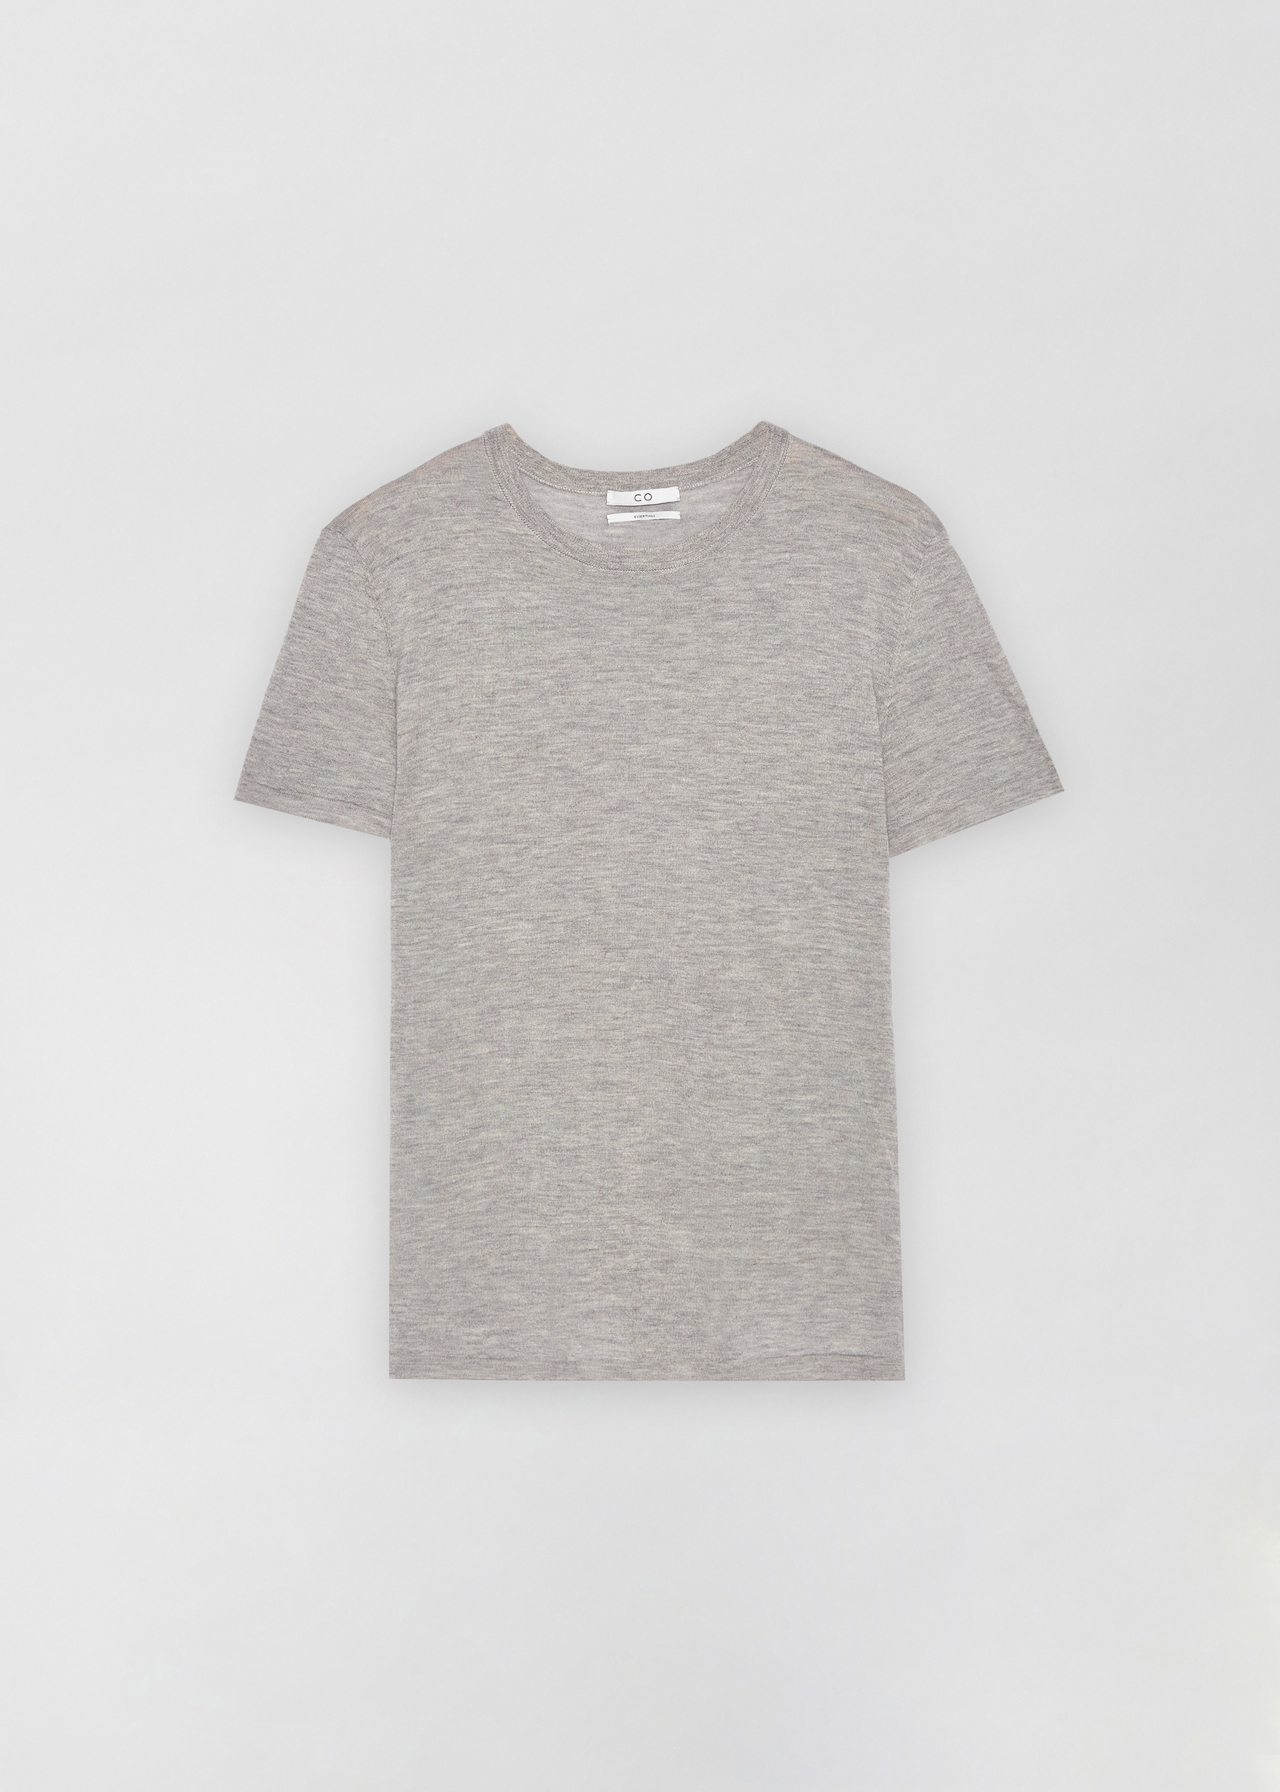 Cashmere T-Shirt - Taupe in Heather by Co Collections